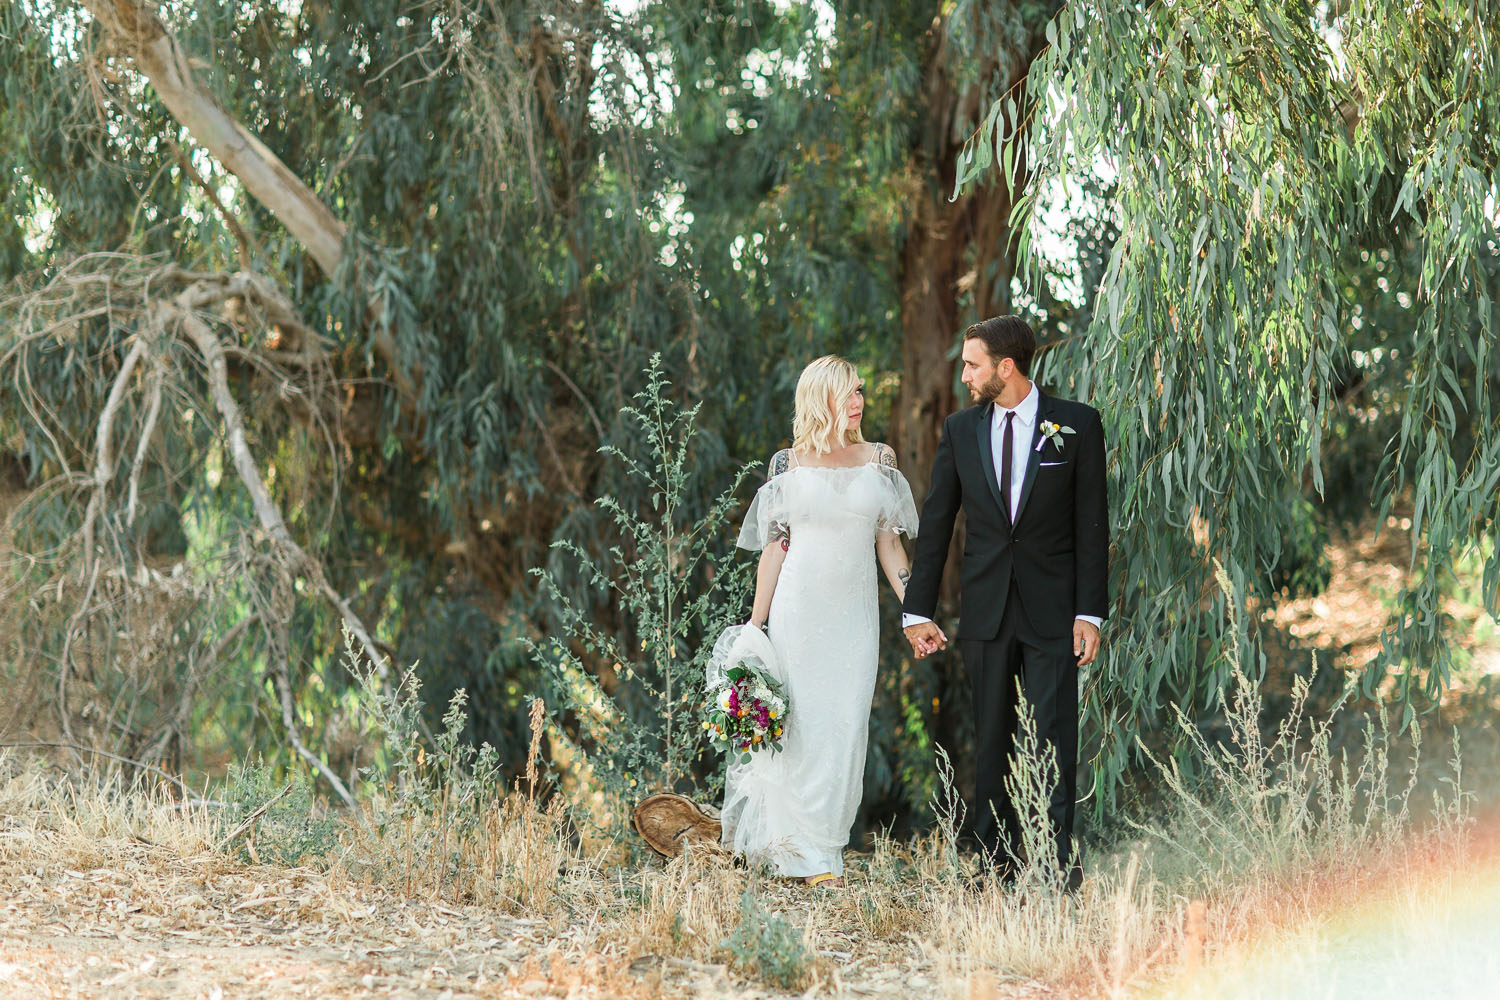 The Photege - Elegant Boho Wedding on Suburu Farm in Bakersfield California- Cassie and Darin Buoni-3009